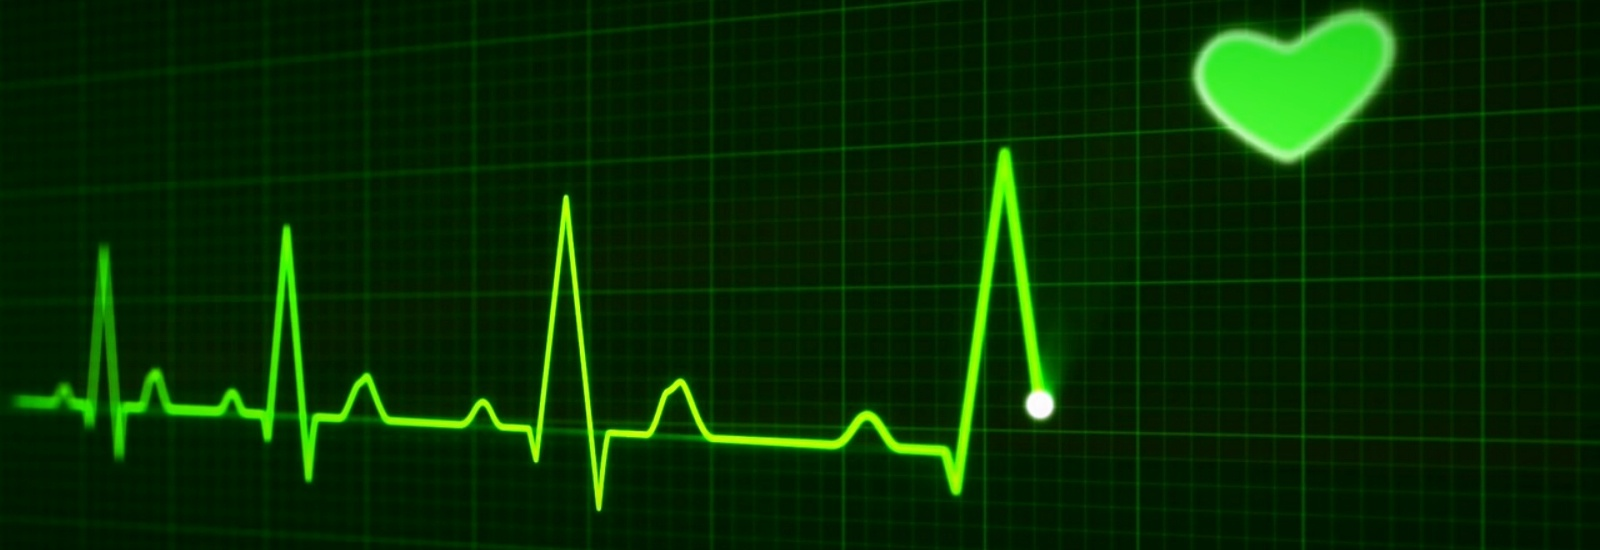 heartbeat-163709_1280-546582-edited.jpg